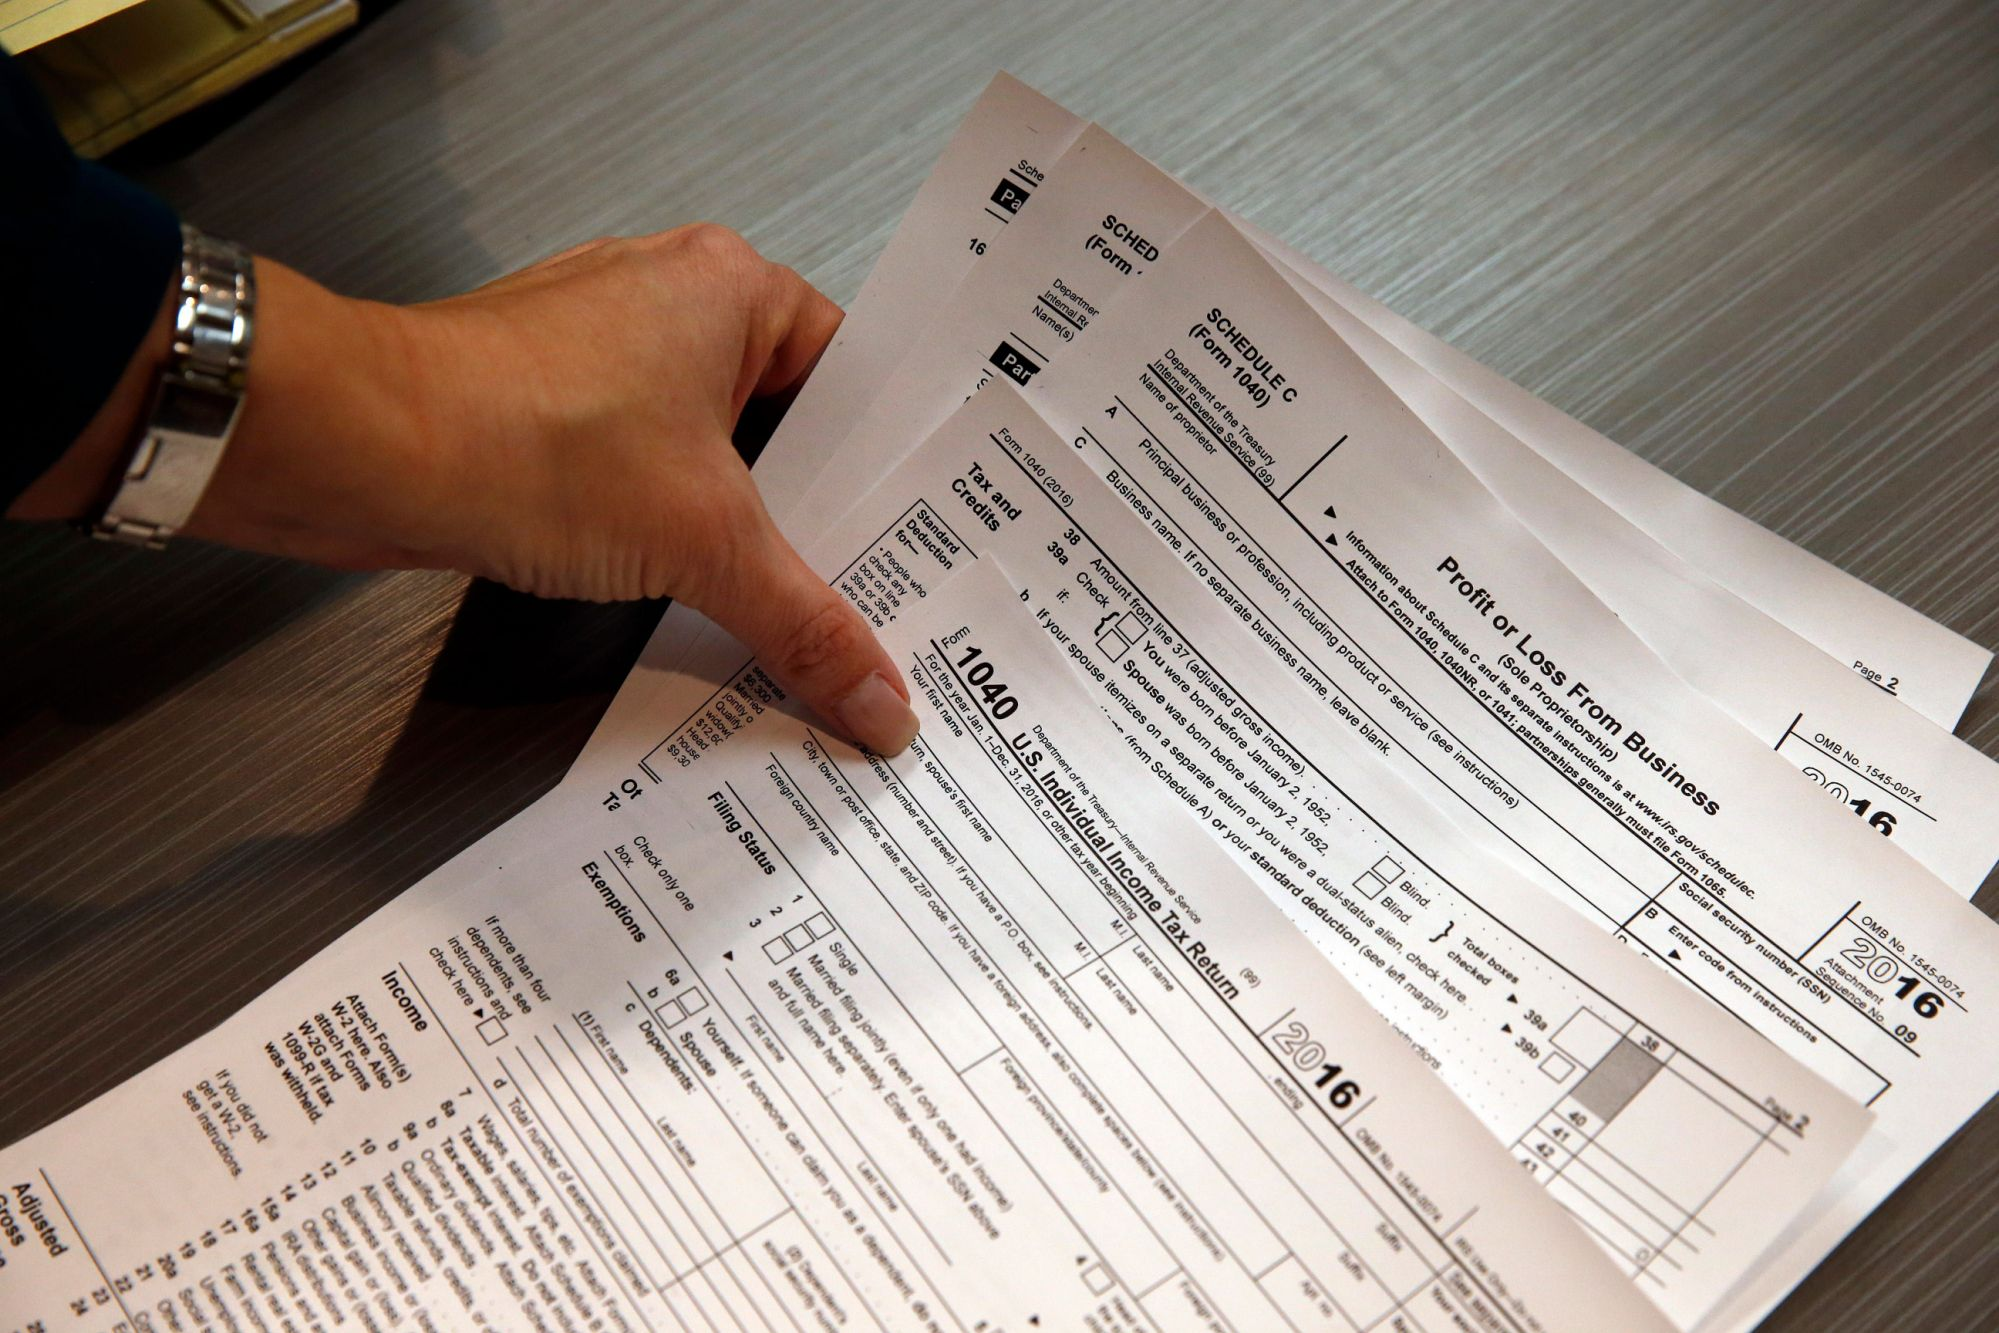 is-it-possible-to-prepay-taxes,-as-president-trump-claims-he-did?